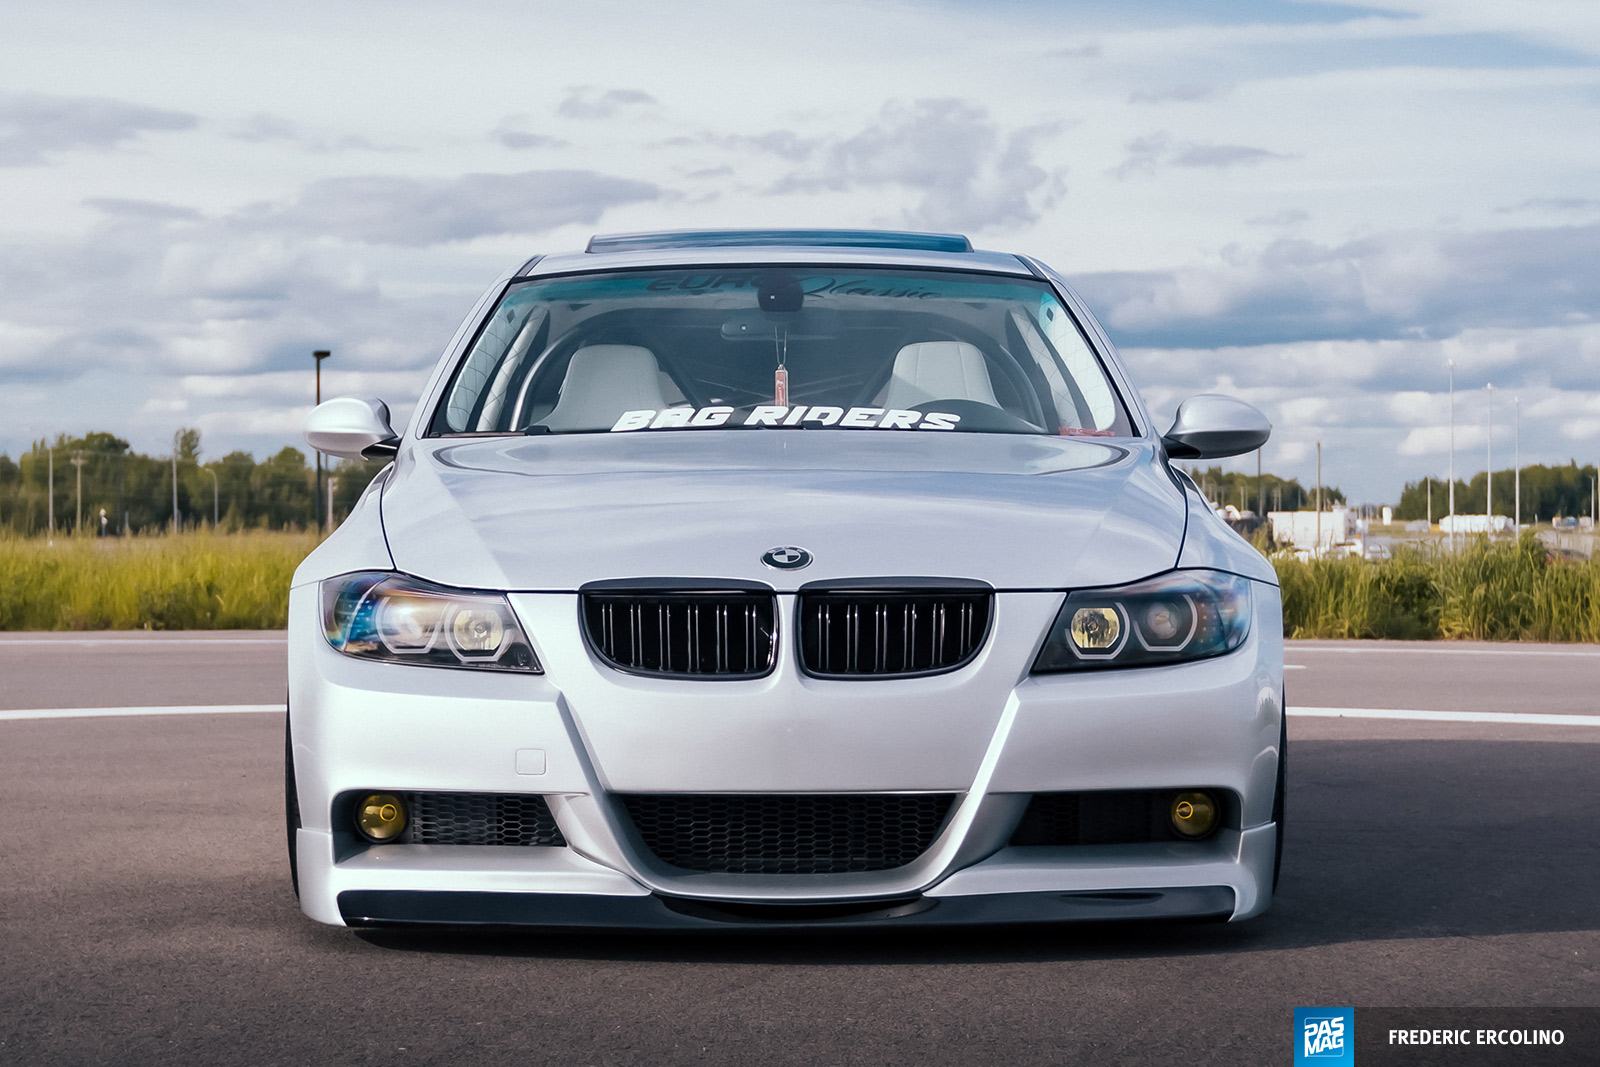 04 Marc Antoine Jeanson 2007 BMW 323i pasmag tuner battlegrounds